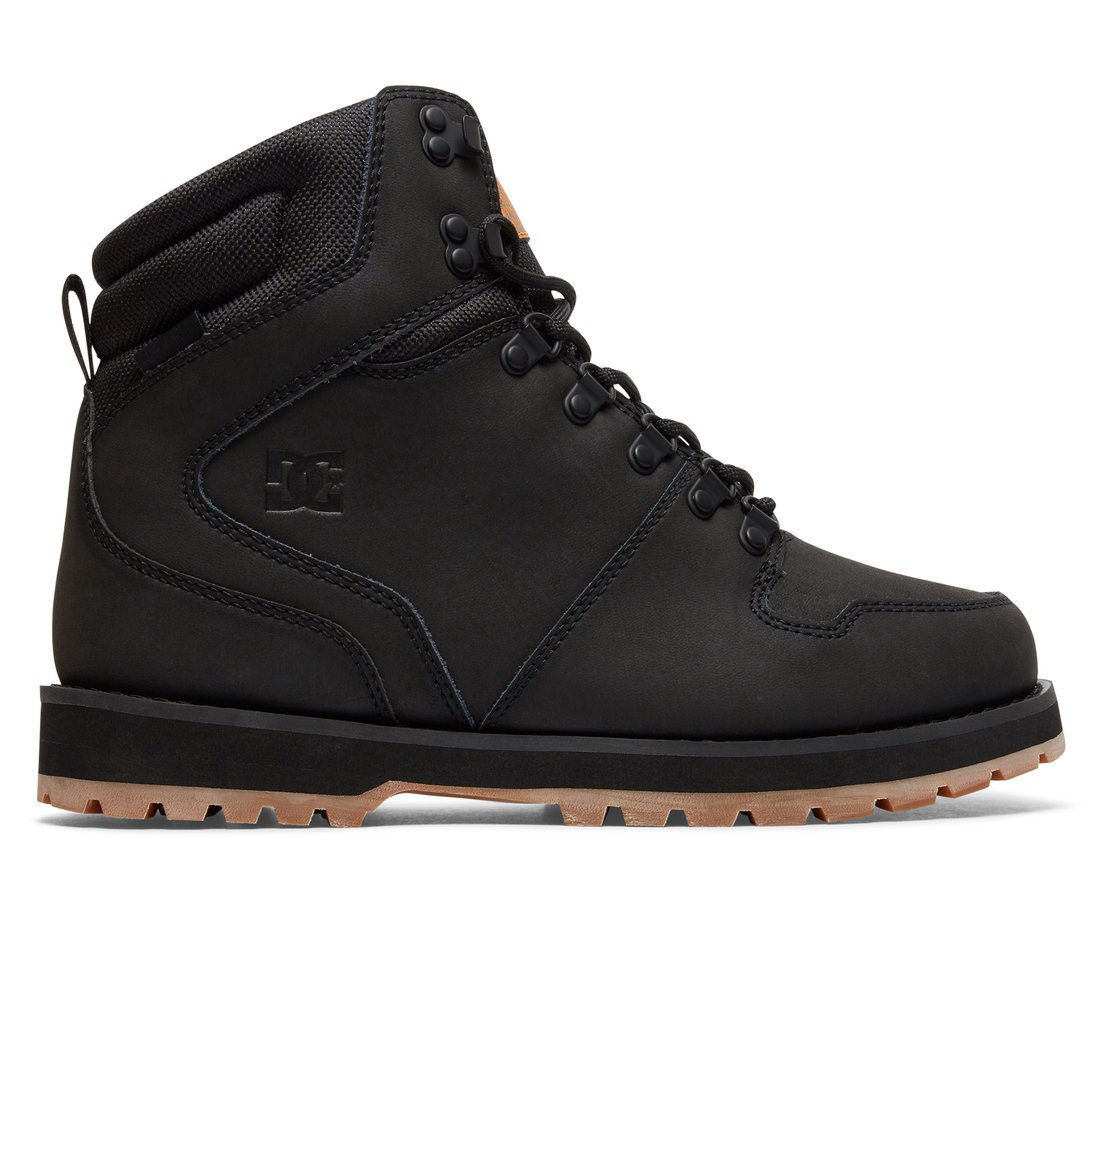 Shop for Men's Winter Boots at REI - FREE SHIPPING With $50 minimum purchase. Top quality, great selection and expert advice you can trust. % Satisfaction Guarantee.